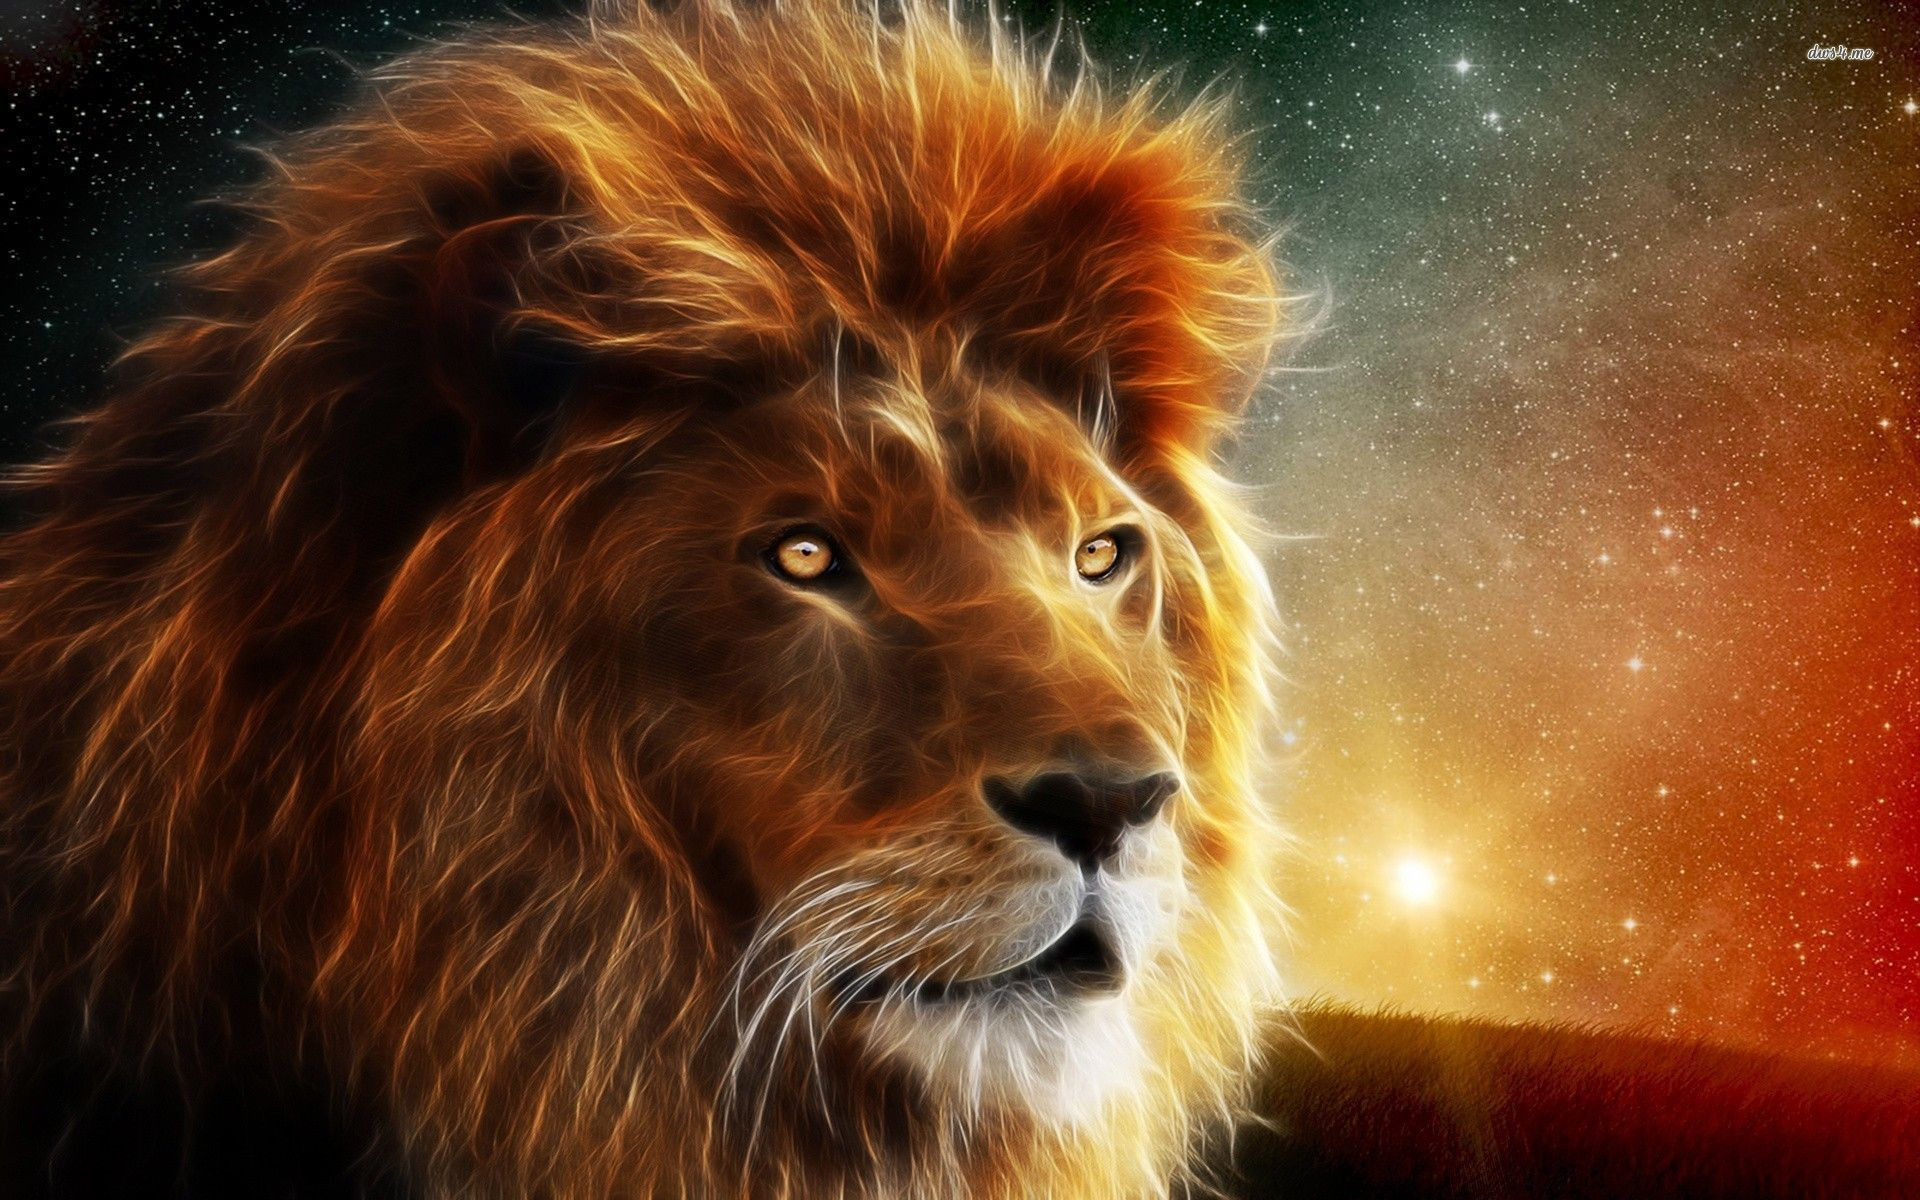 Res 1920x1200 Cool High Definition Lion Wallpapers Download For Free A M F Wallpapers In 2020 Lion Hd Wallpaper Lions Photos Lion Wallpaper